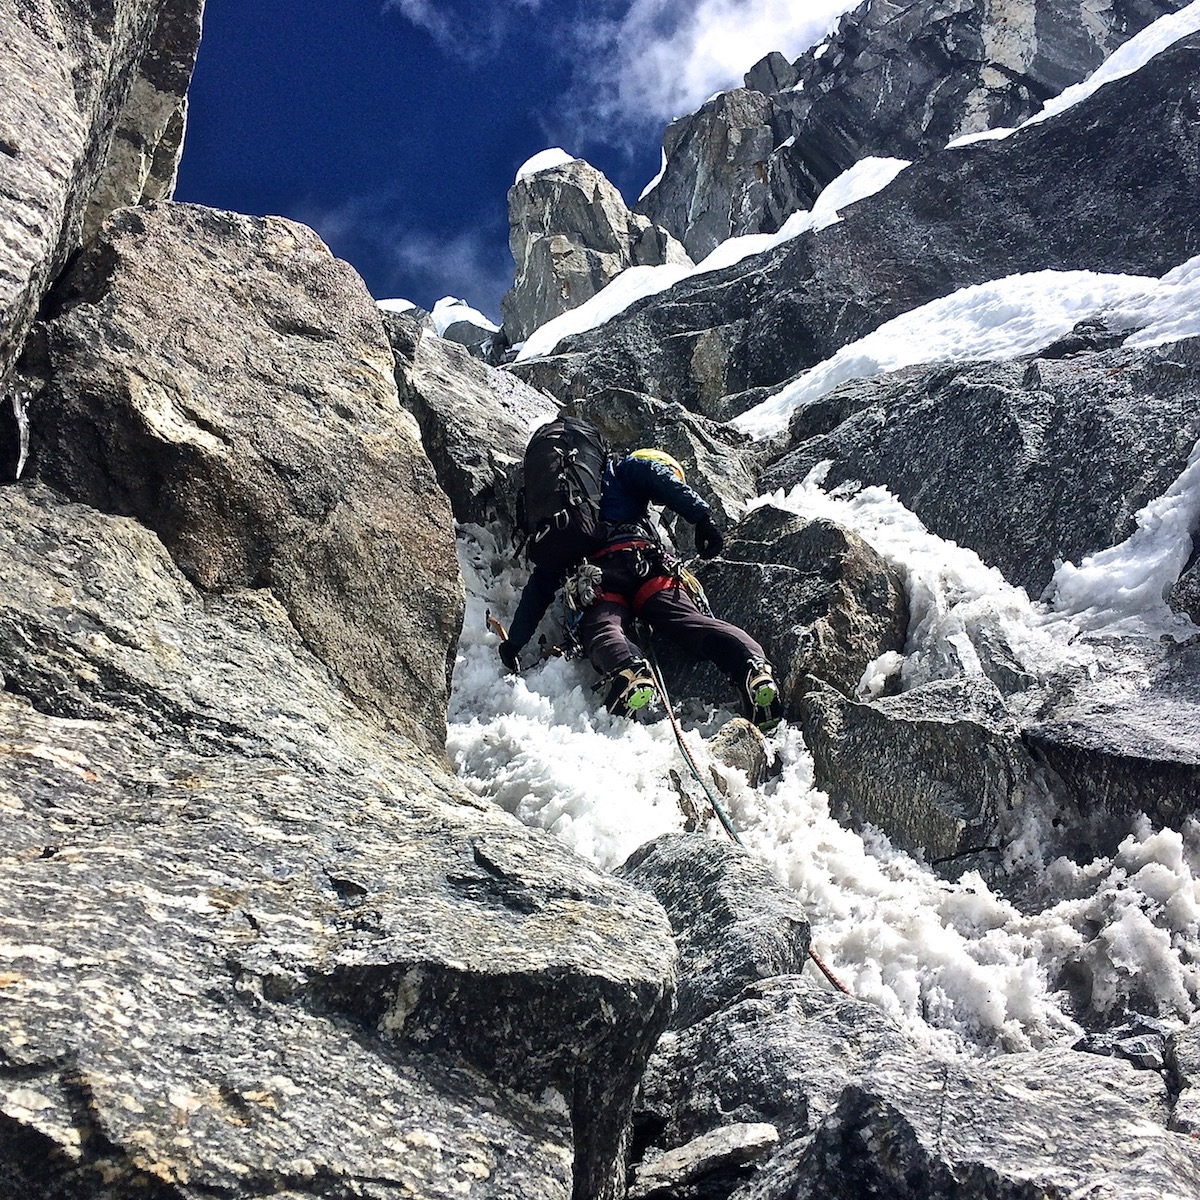 Pugliese sets off on an M5 pitch on the headwall of Chugimago. [Photo] Nik Mirhashemi